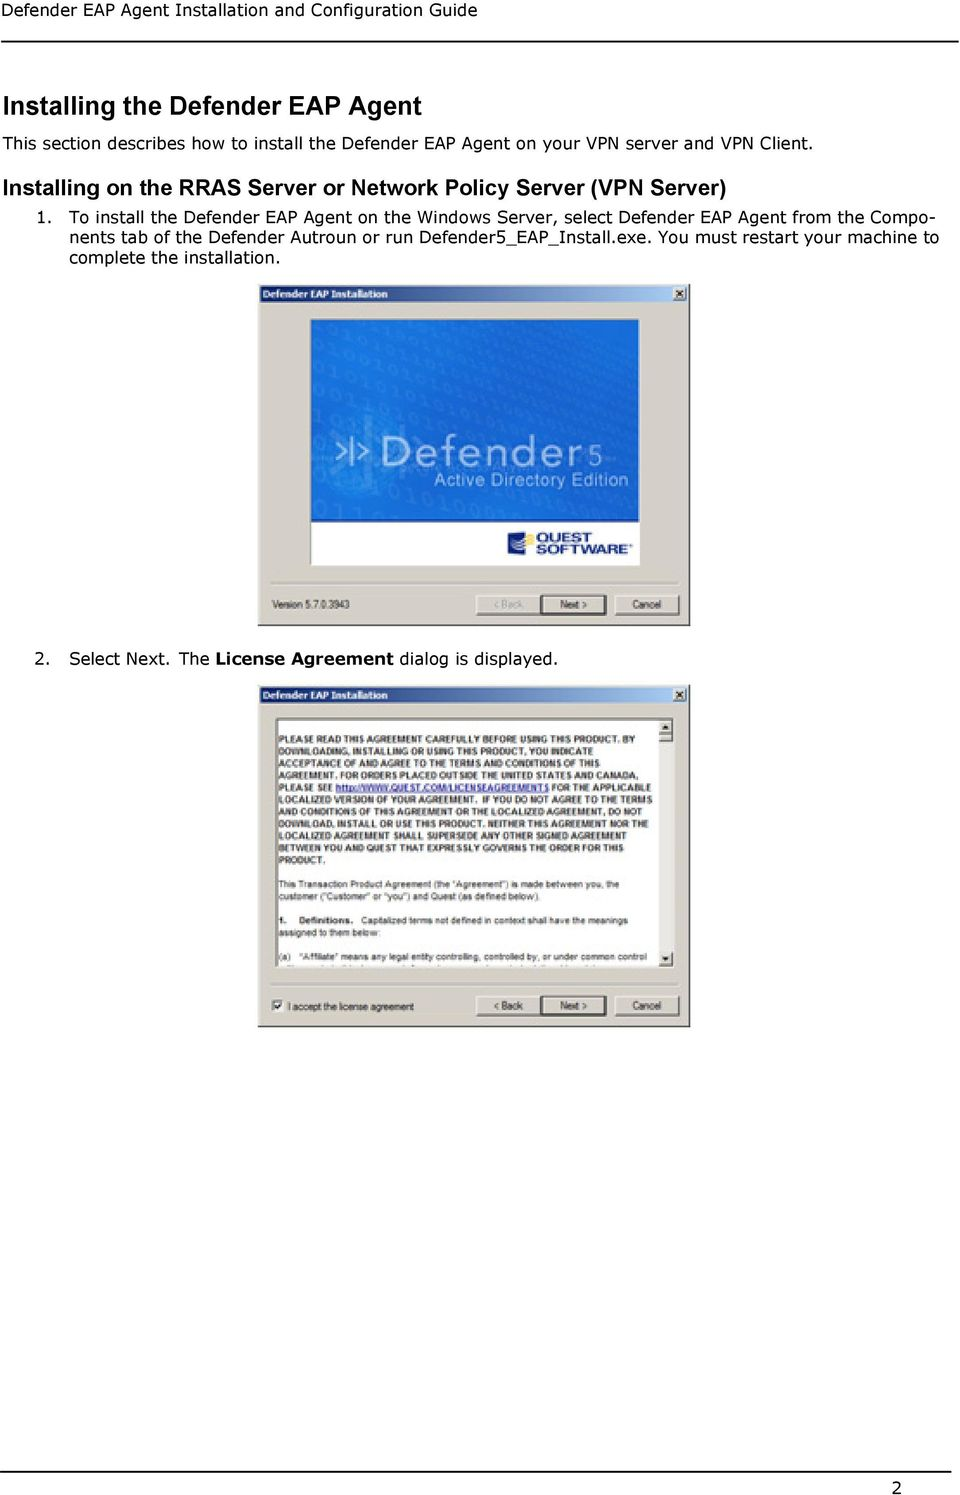 To install the Defender EAP Agent on the Windows Server, select Defender EAP Agent from the Components tab of the